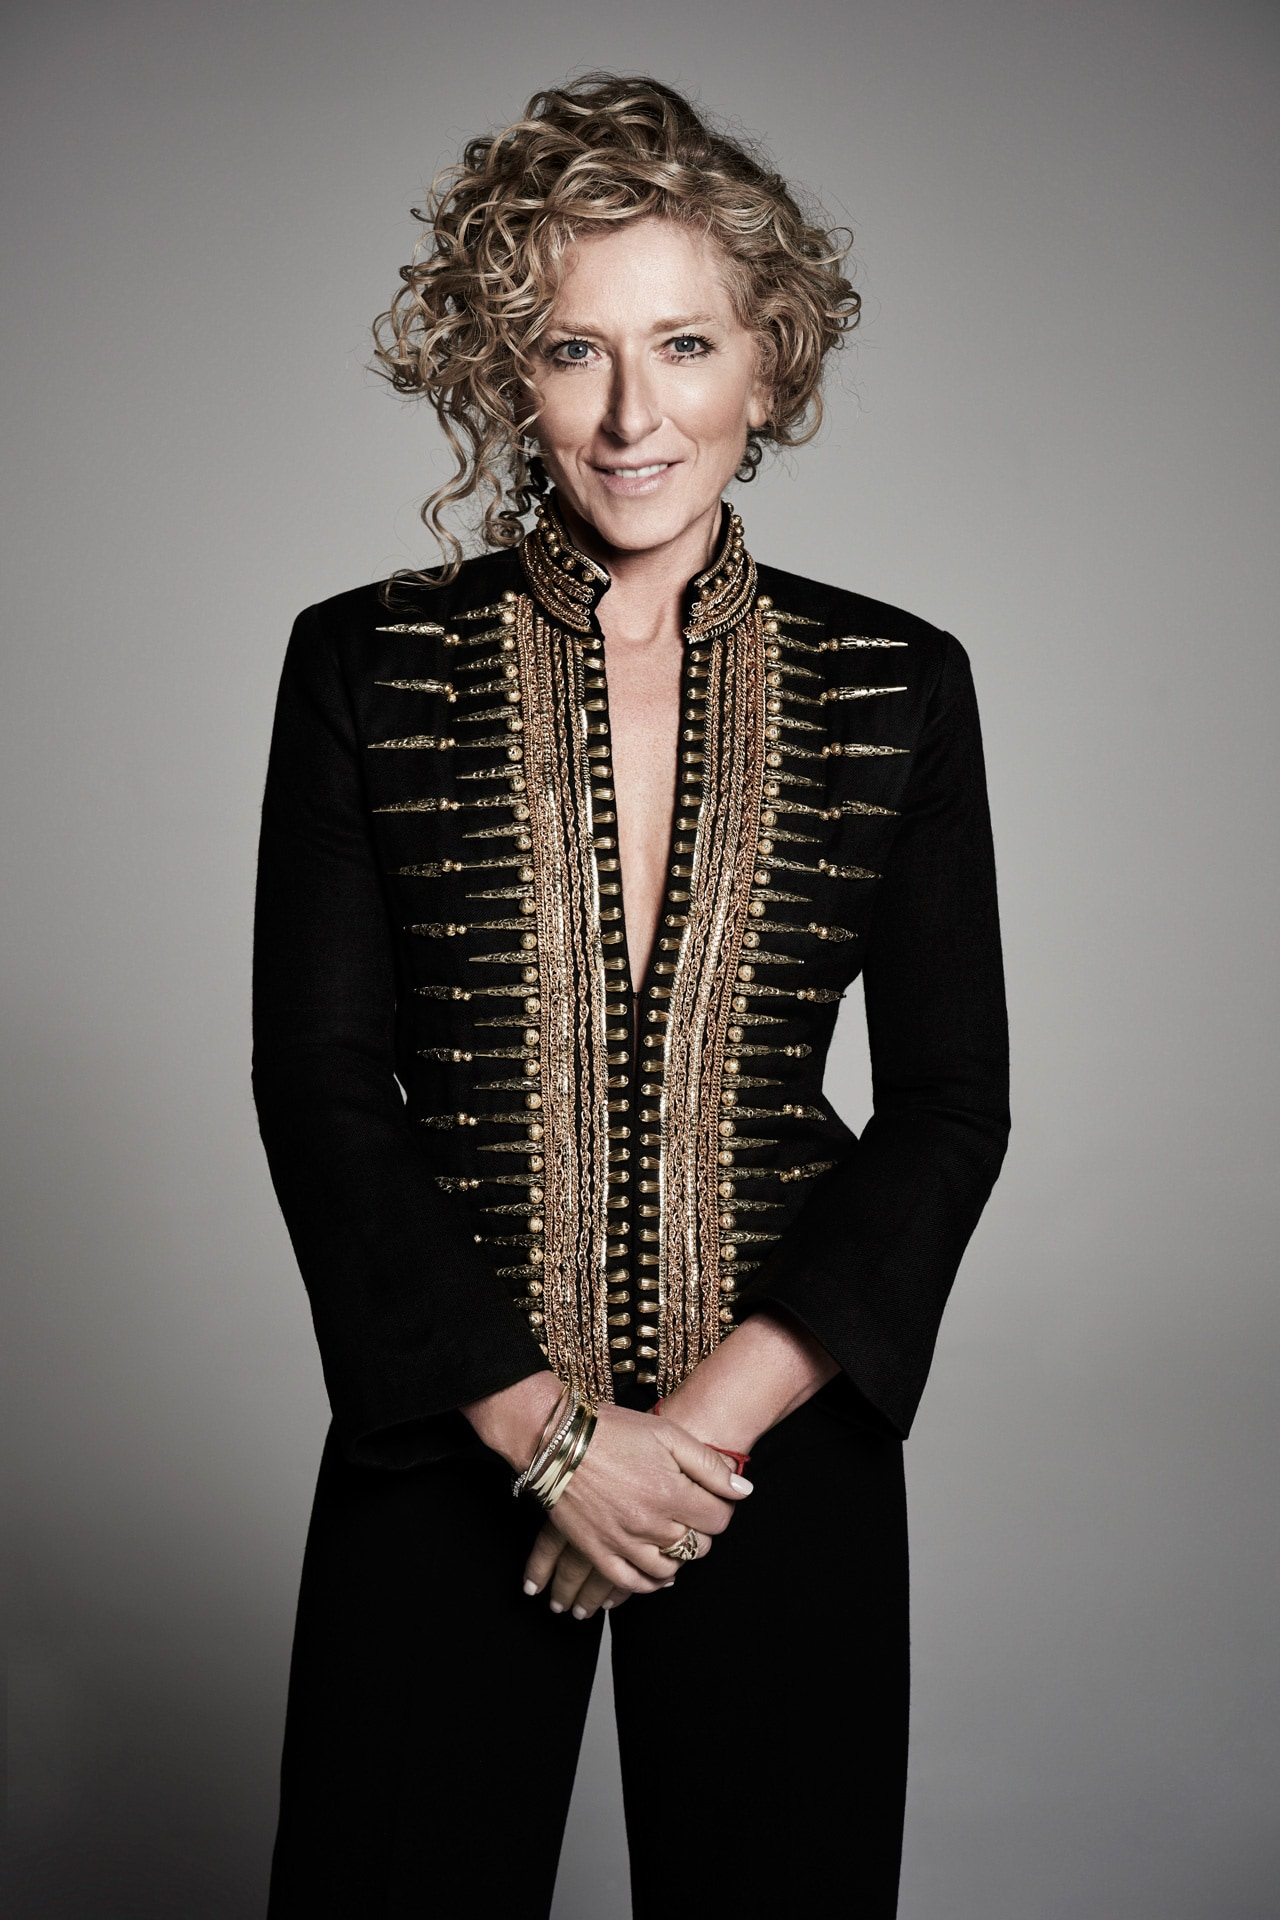 Kelly Hoppen wants to teach you about interior design